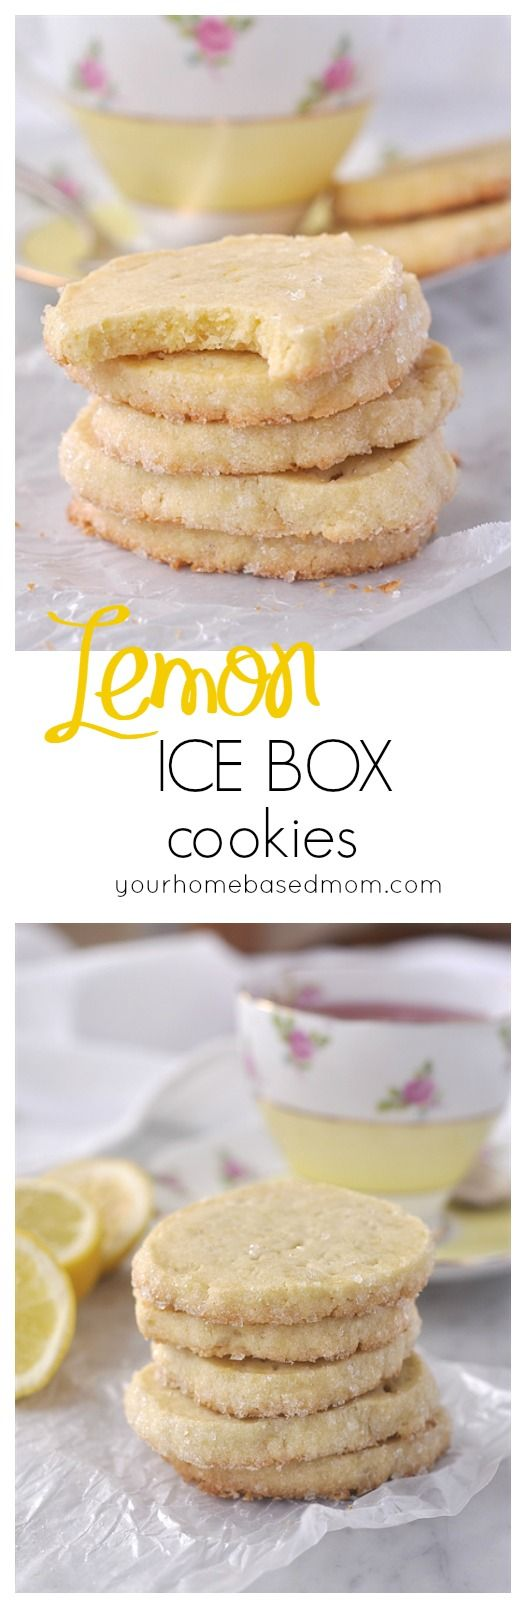 Lemon Ice Box Cookies. Great summer time dessert recipe.